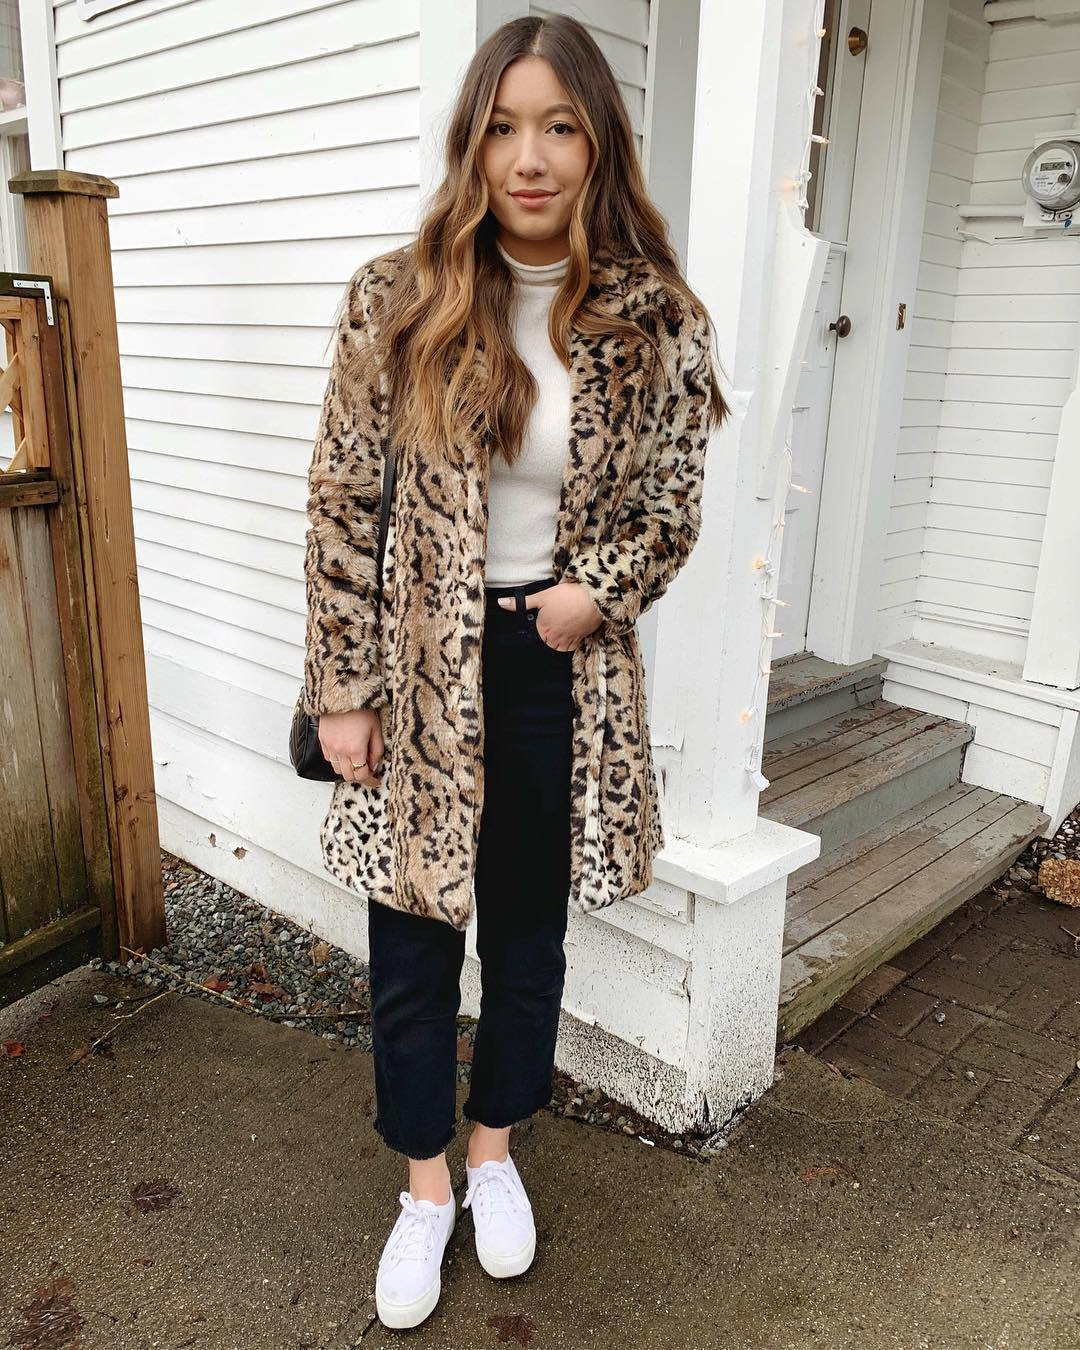 coat faux fur coat leopard print white sneakers black jeans cropped jeans straight jeans white turtleneck top black bag